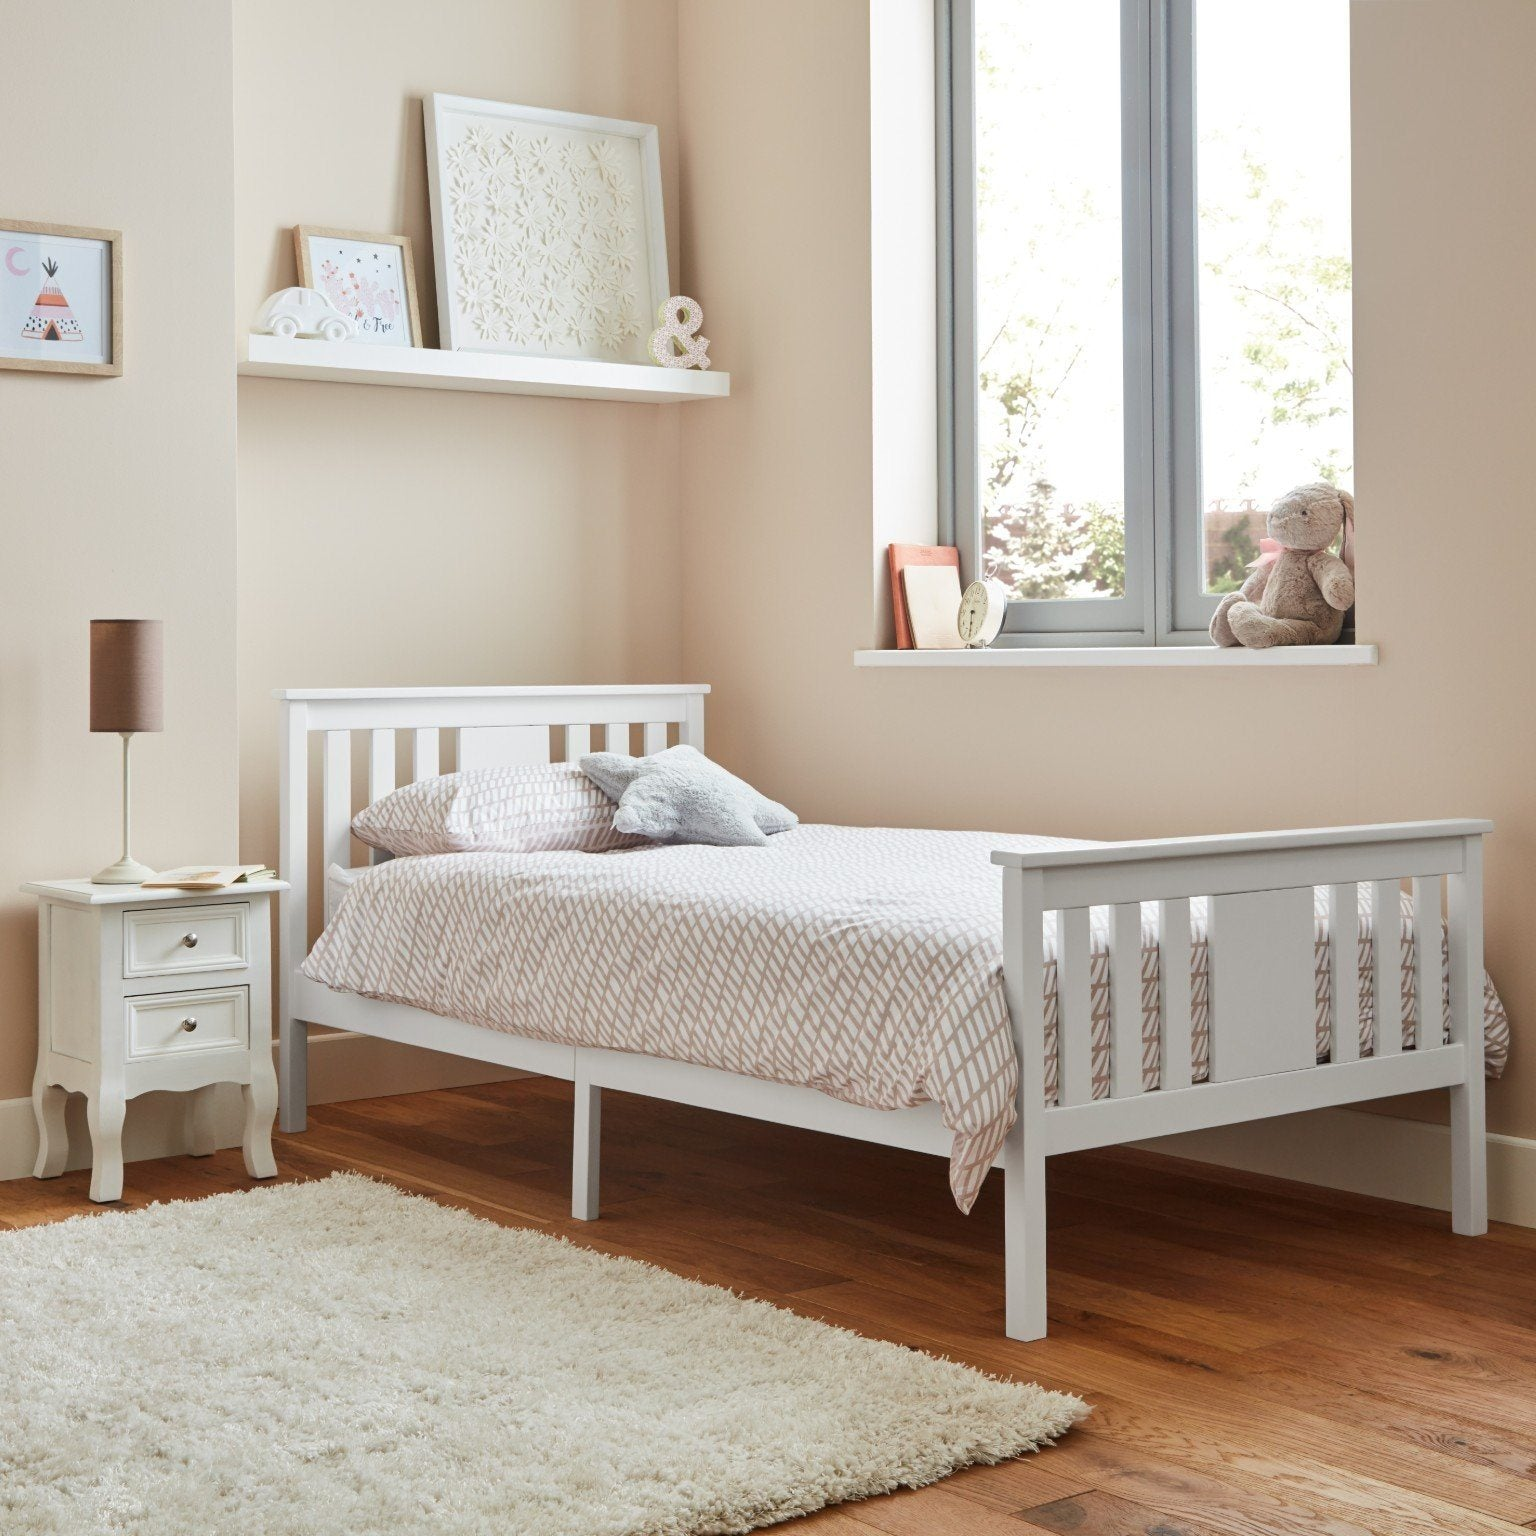 White wooden single bed - Laura James